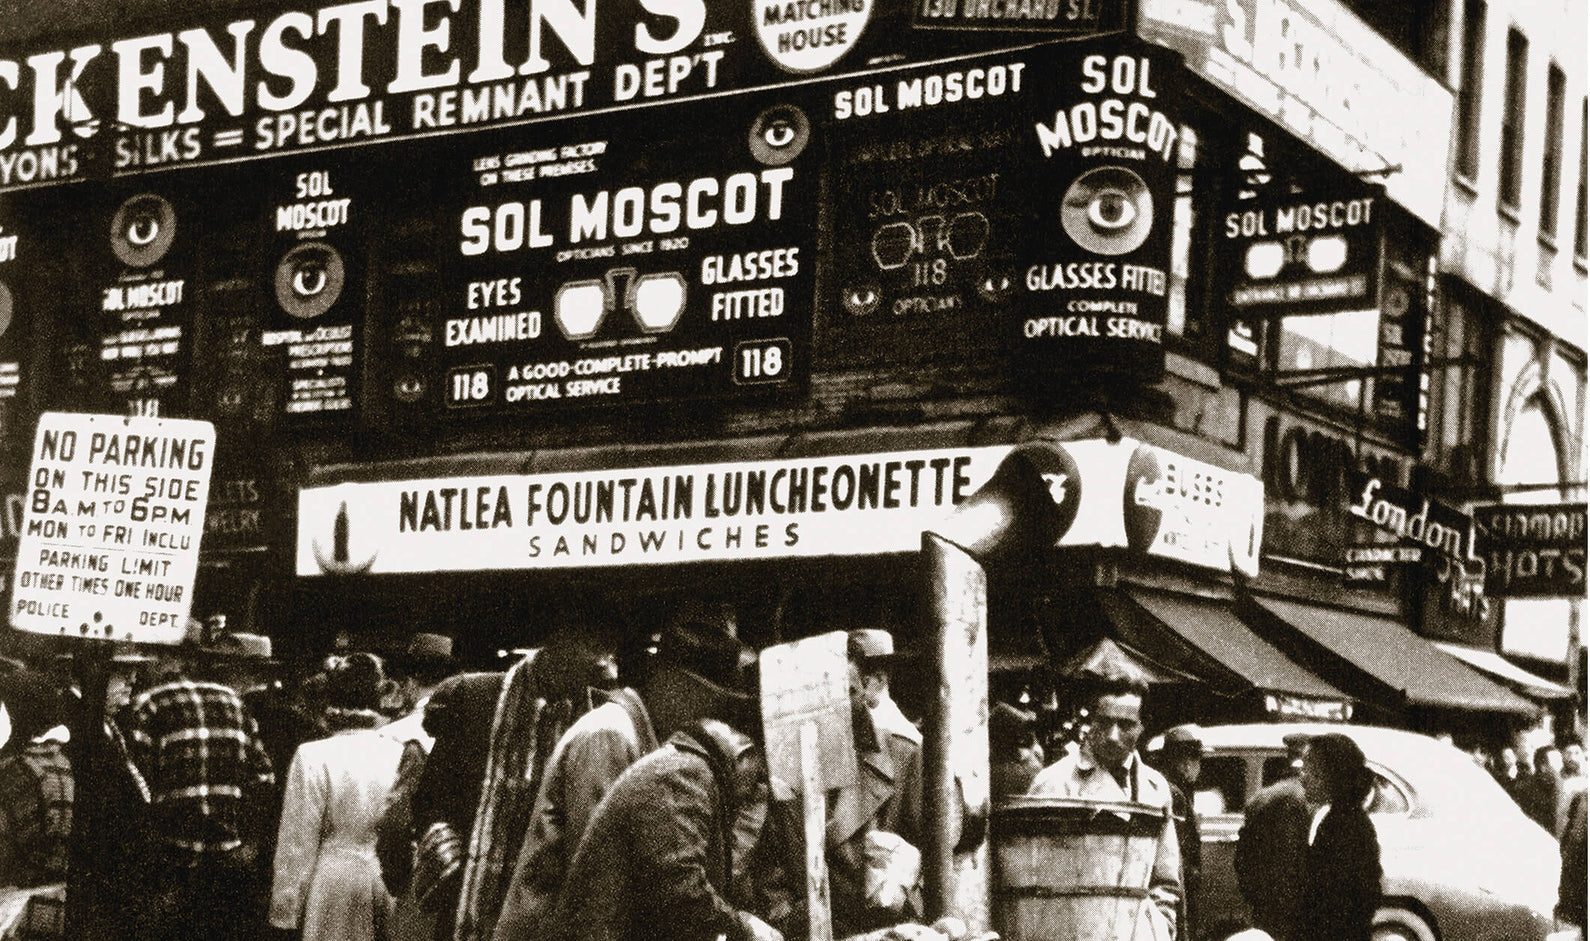 Black and white photo of Moscot store on busy street corner